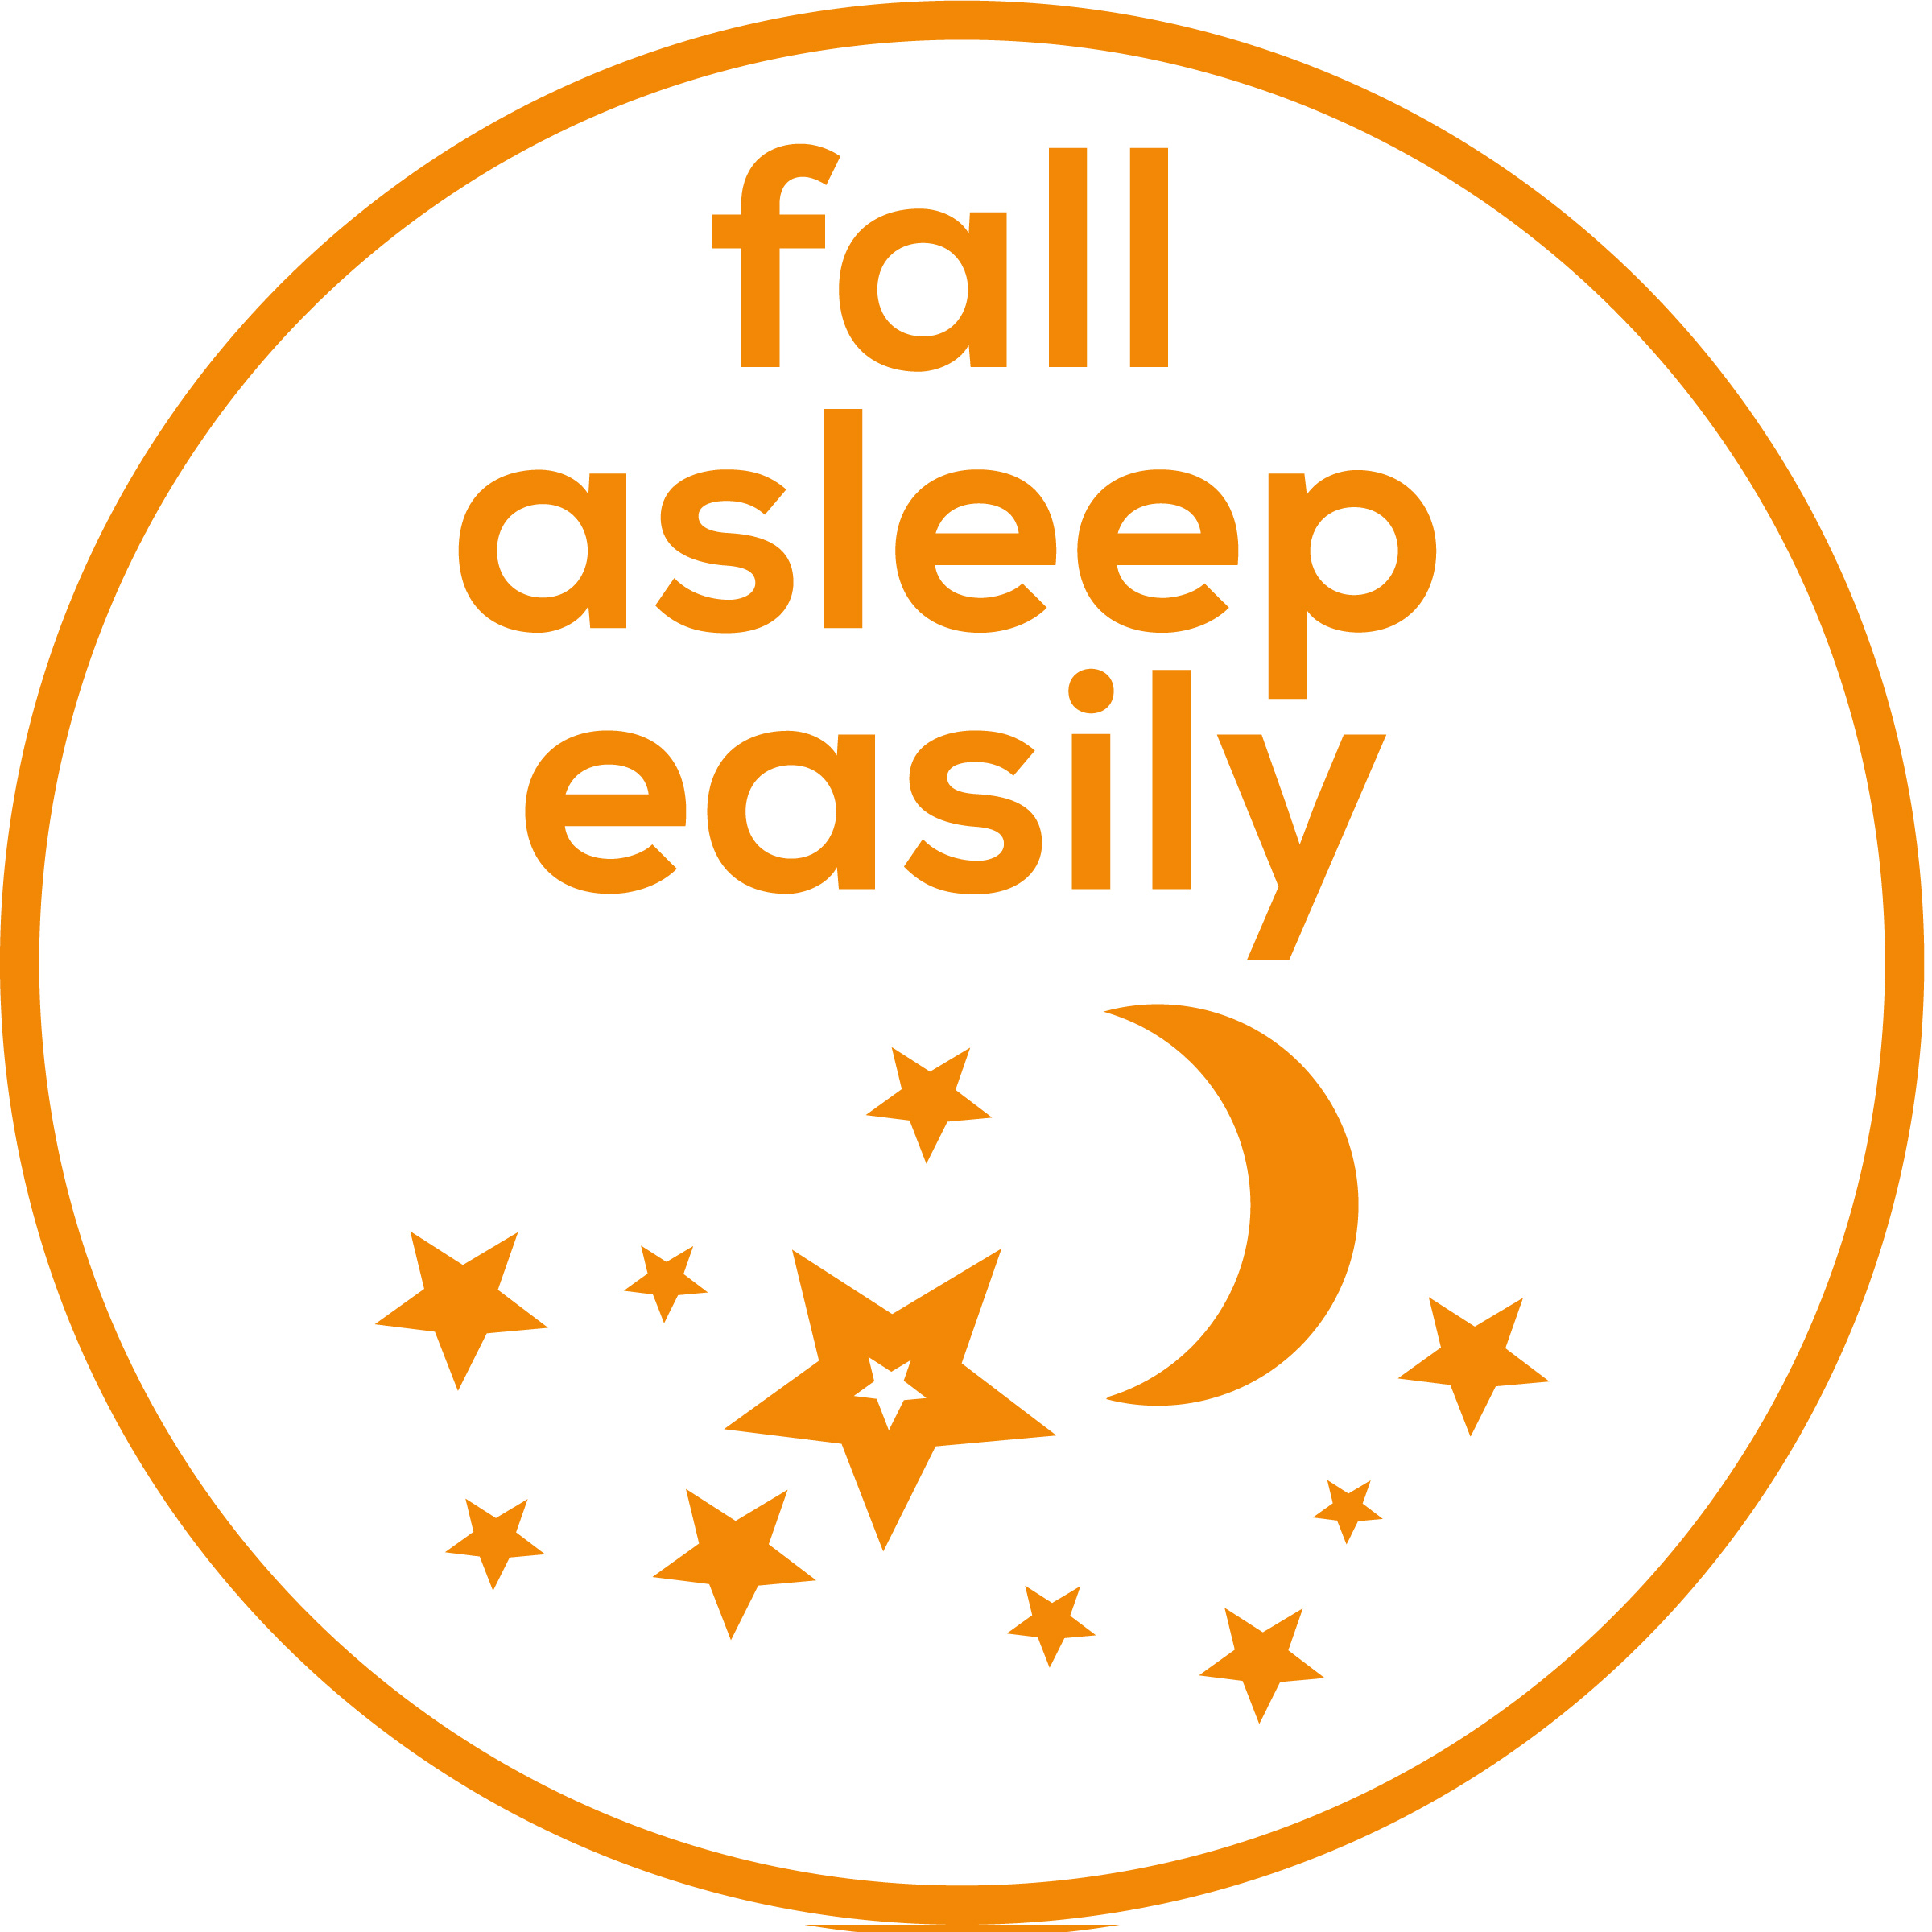 Fall asleep easily Gentle sleeping aid with light